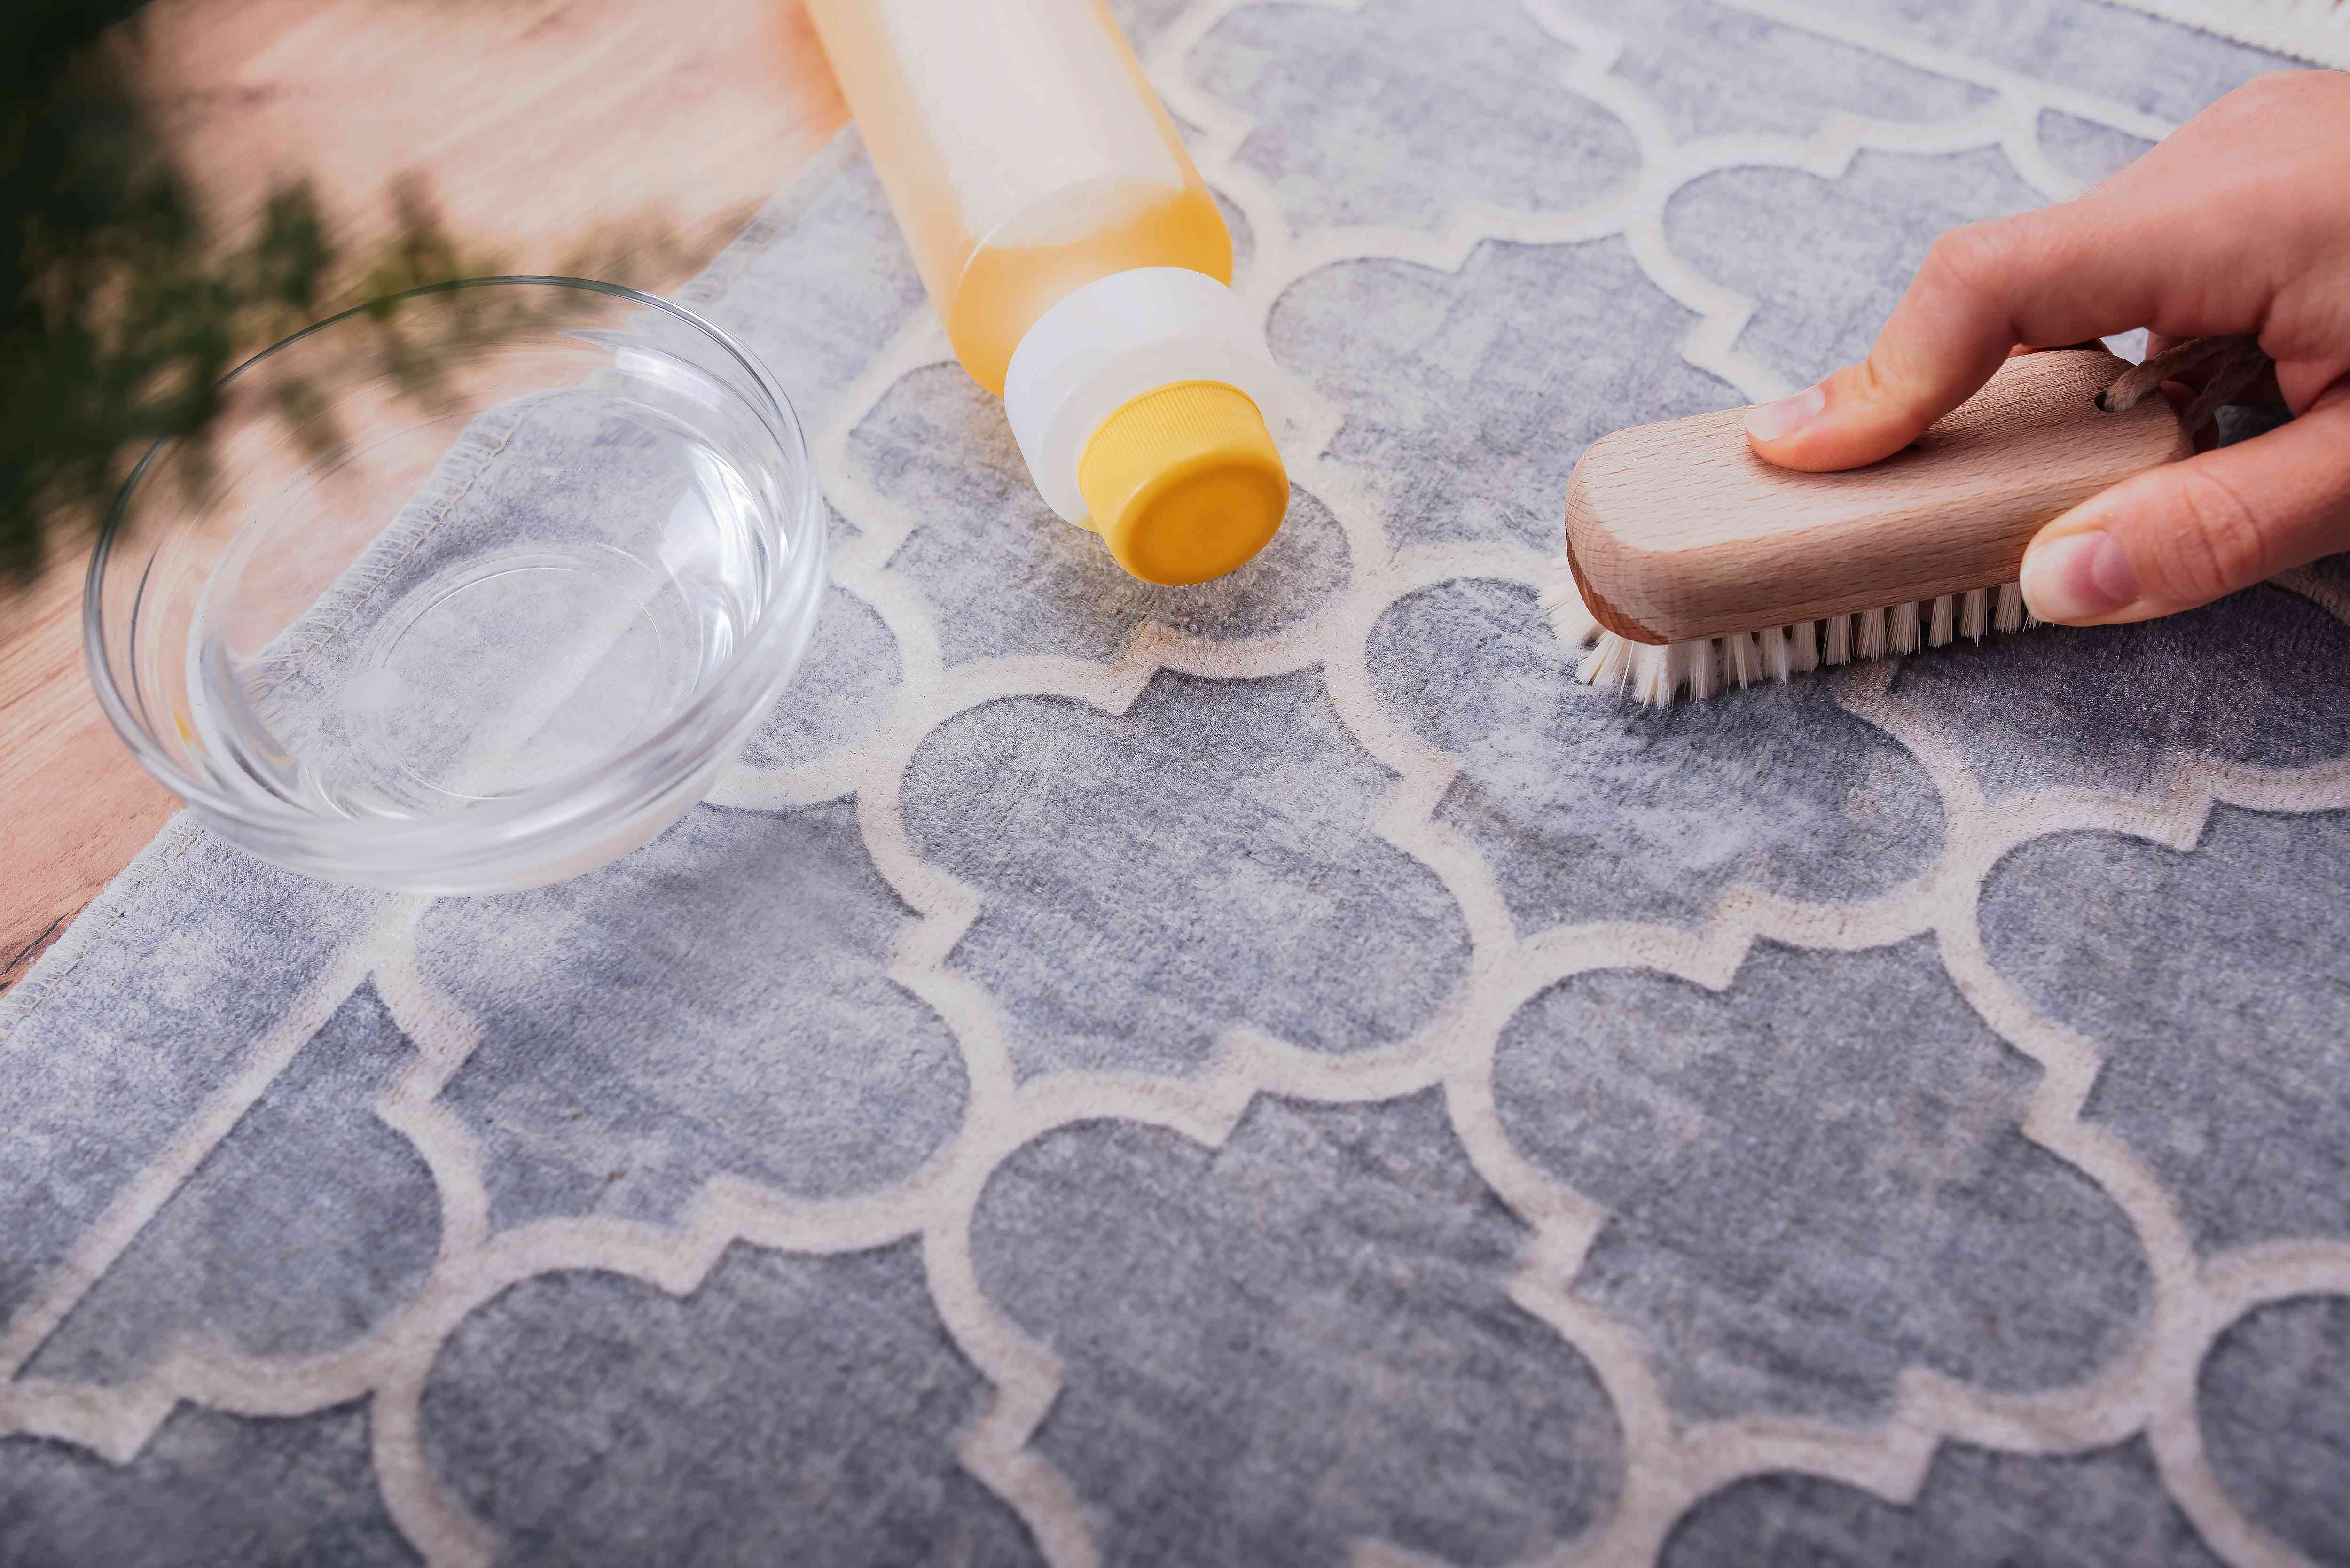 applying detergent to a sap stain on a carpet